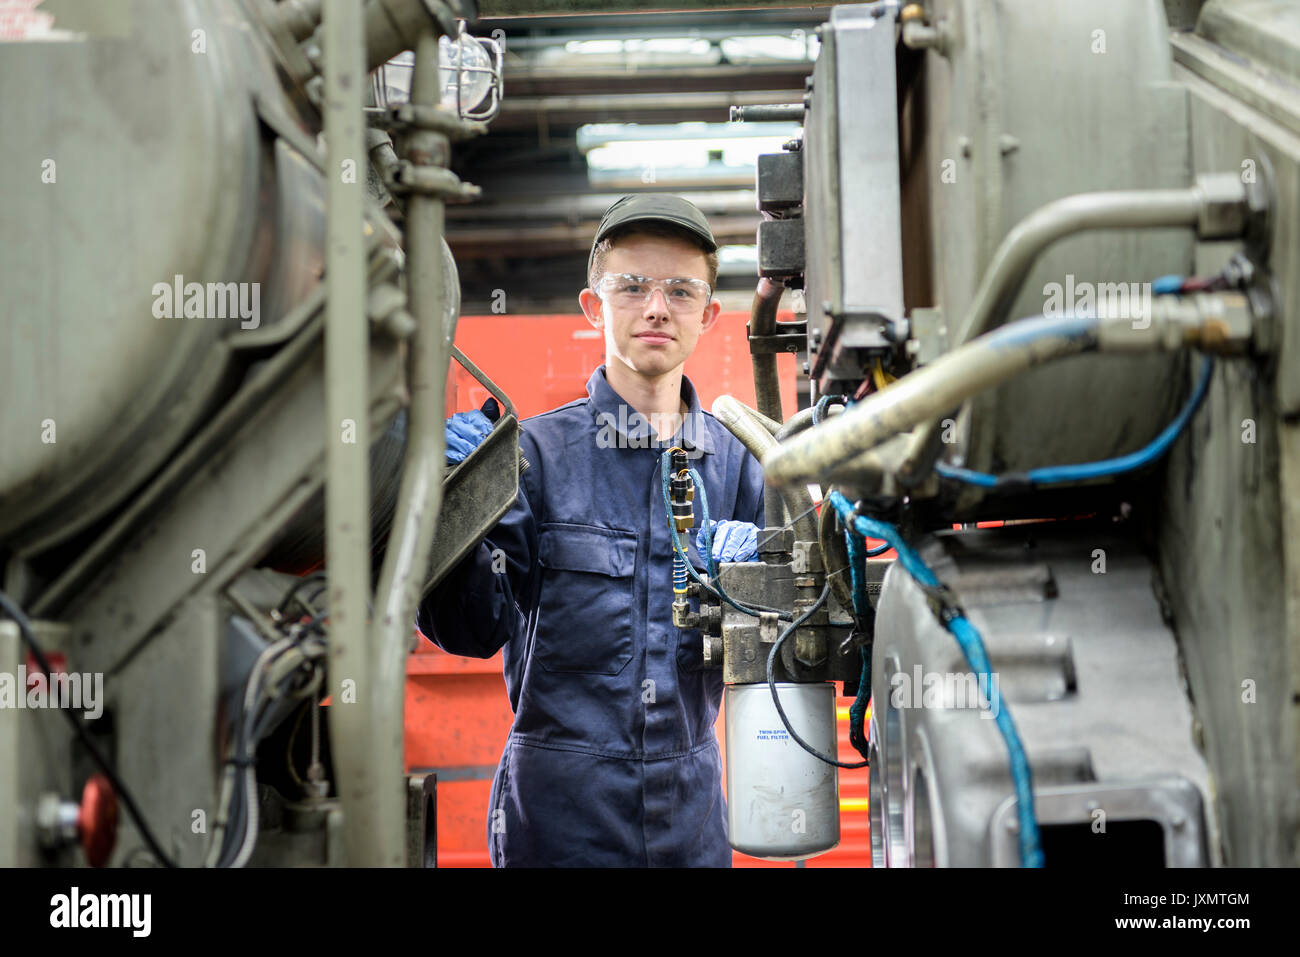 Portrait of young apprentice locomotive engineer in train works - Stock Image